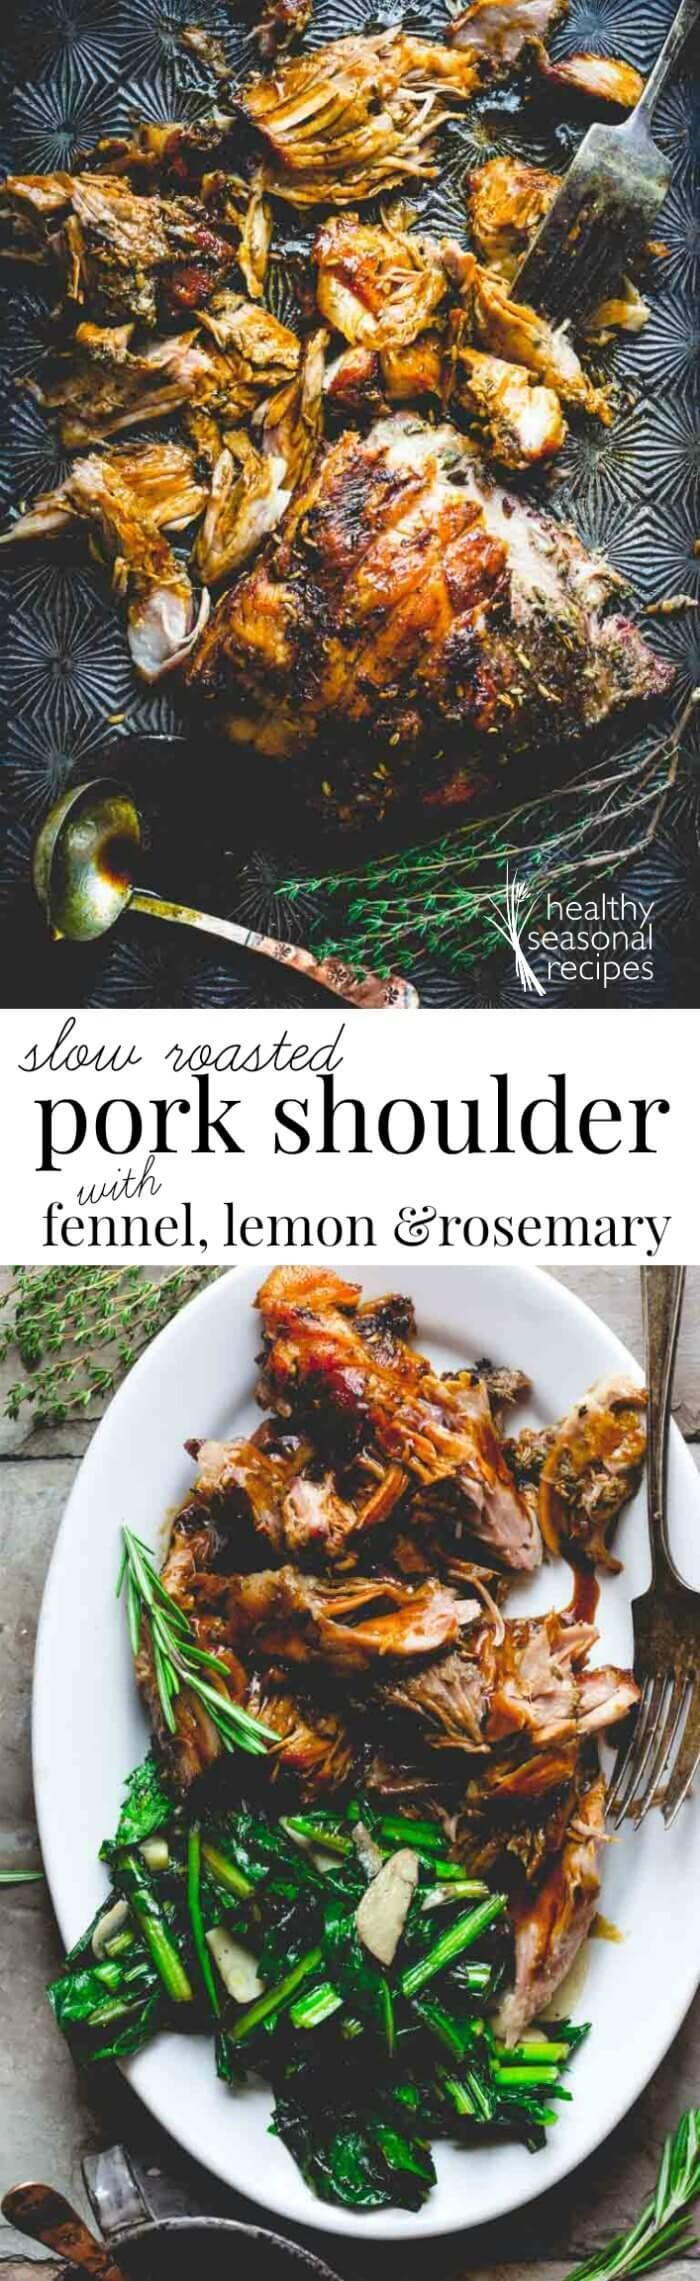 Slow Roasted Pork Shoulder with Fennel Lemon and Rosemary on Healthy Seasonal Recipes